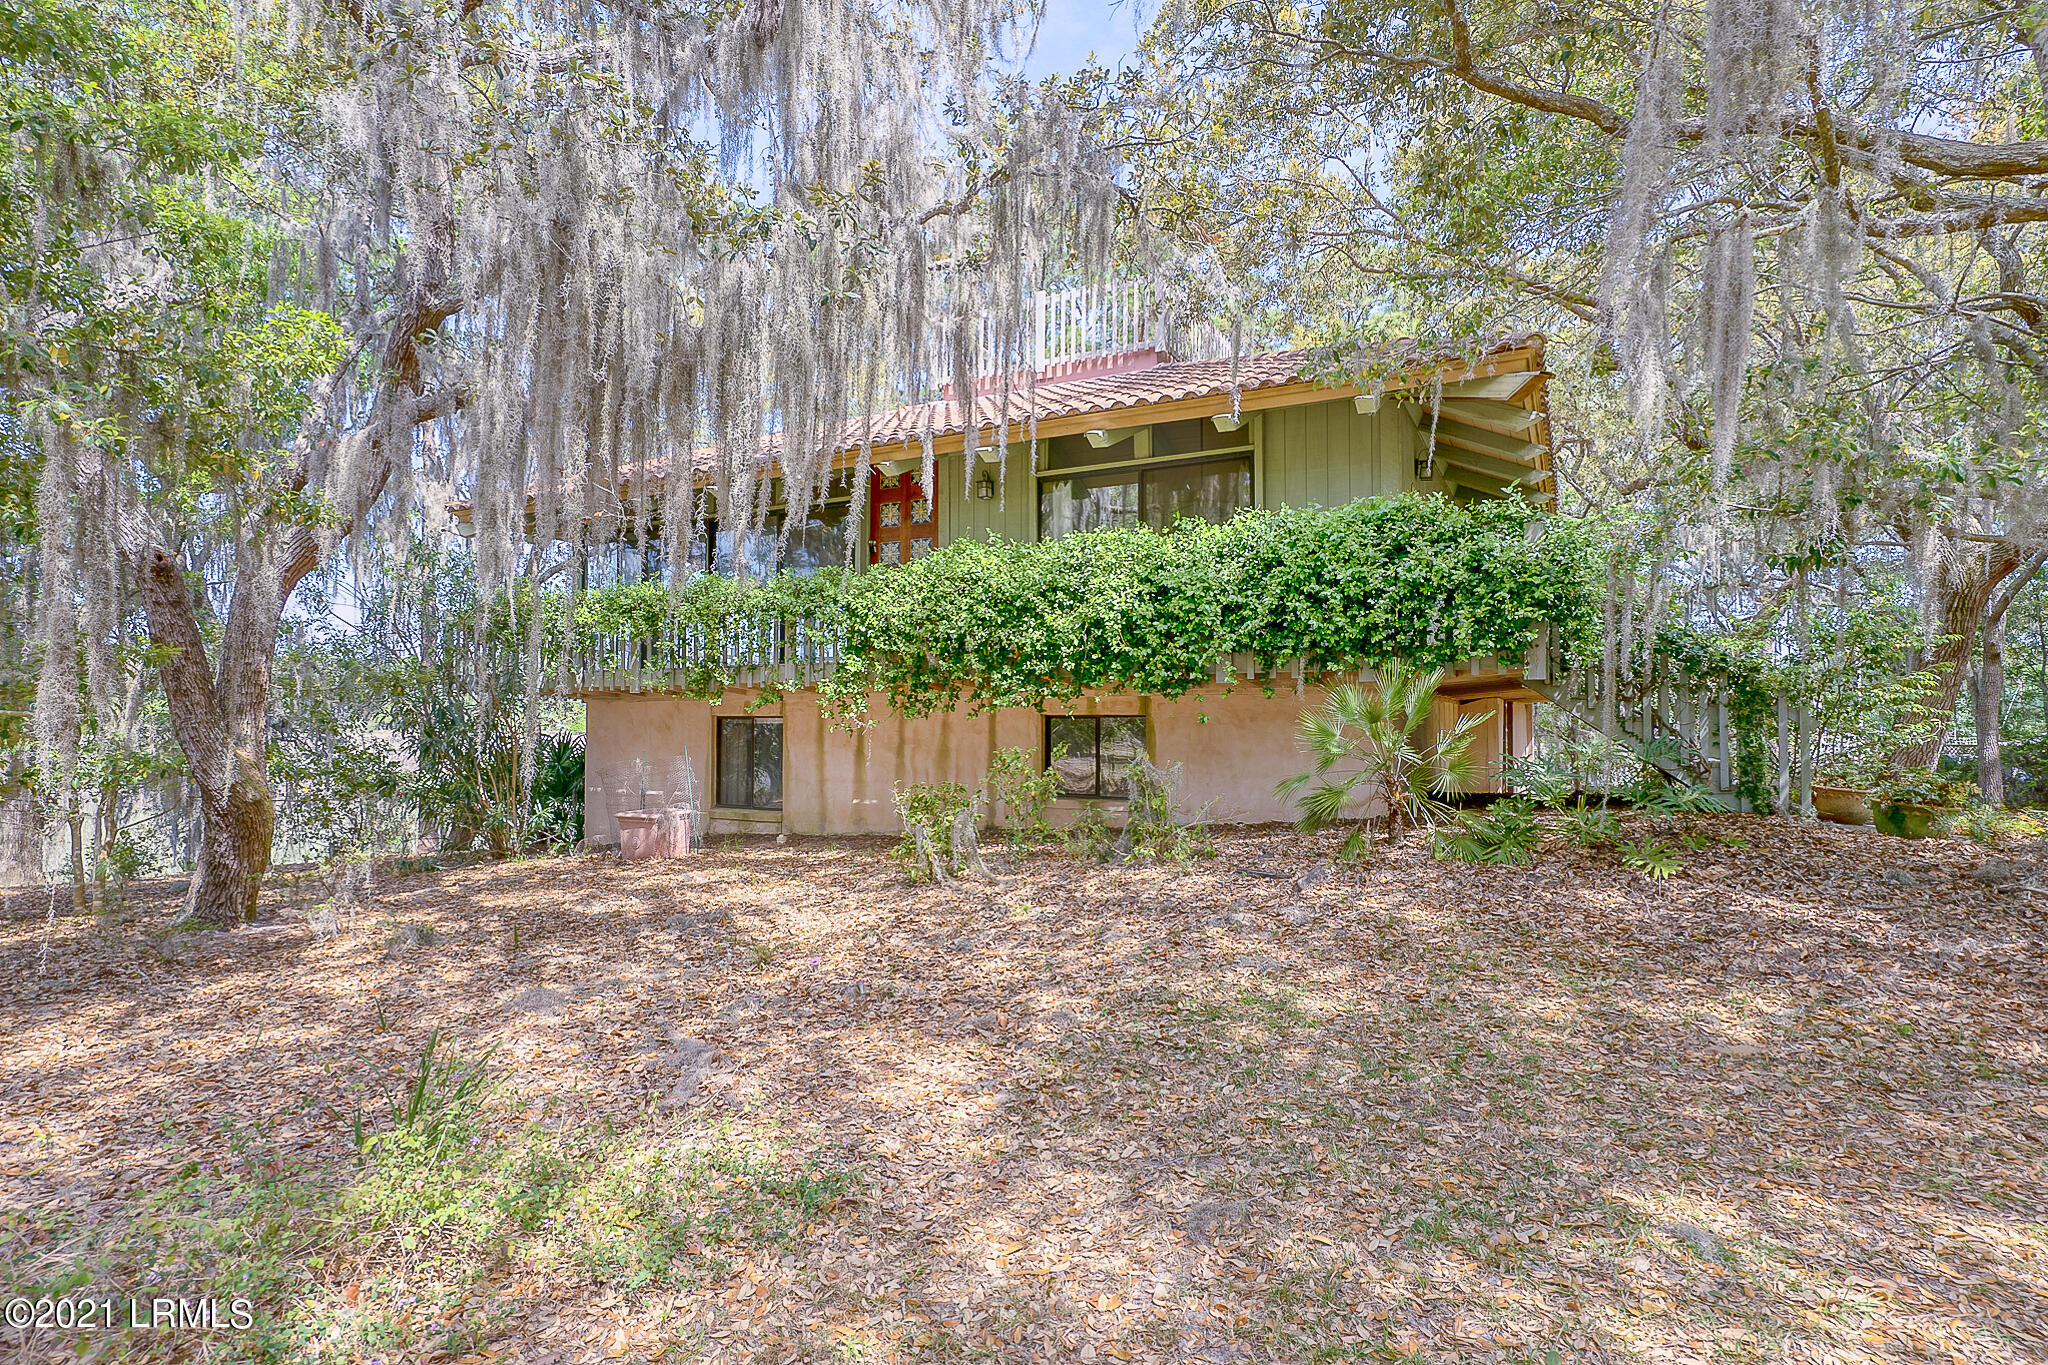 Photo of 22 Cameroon Drive, Beaufort, SC 29907